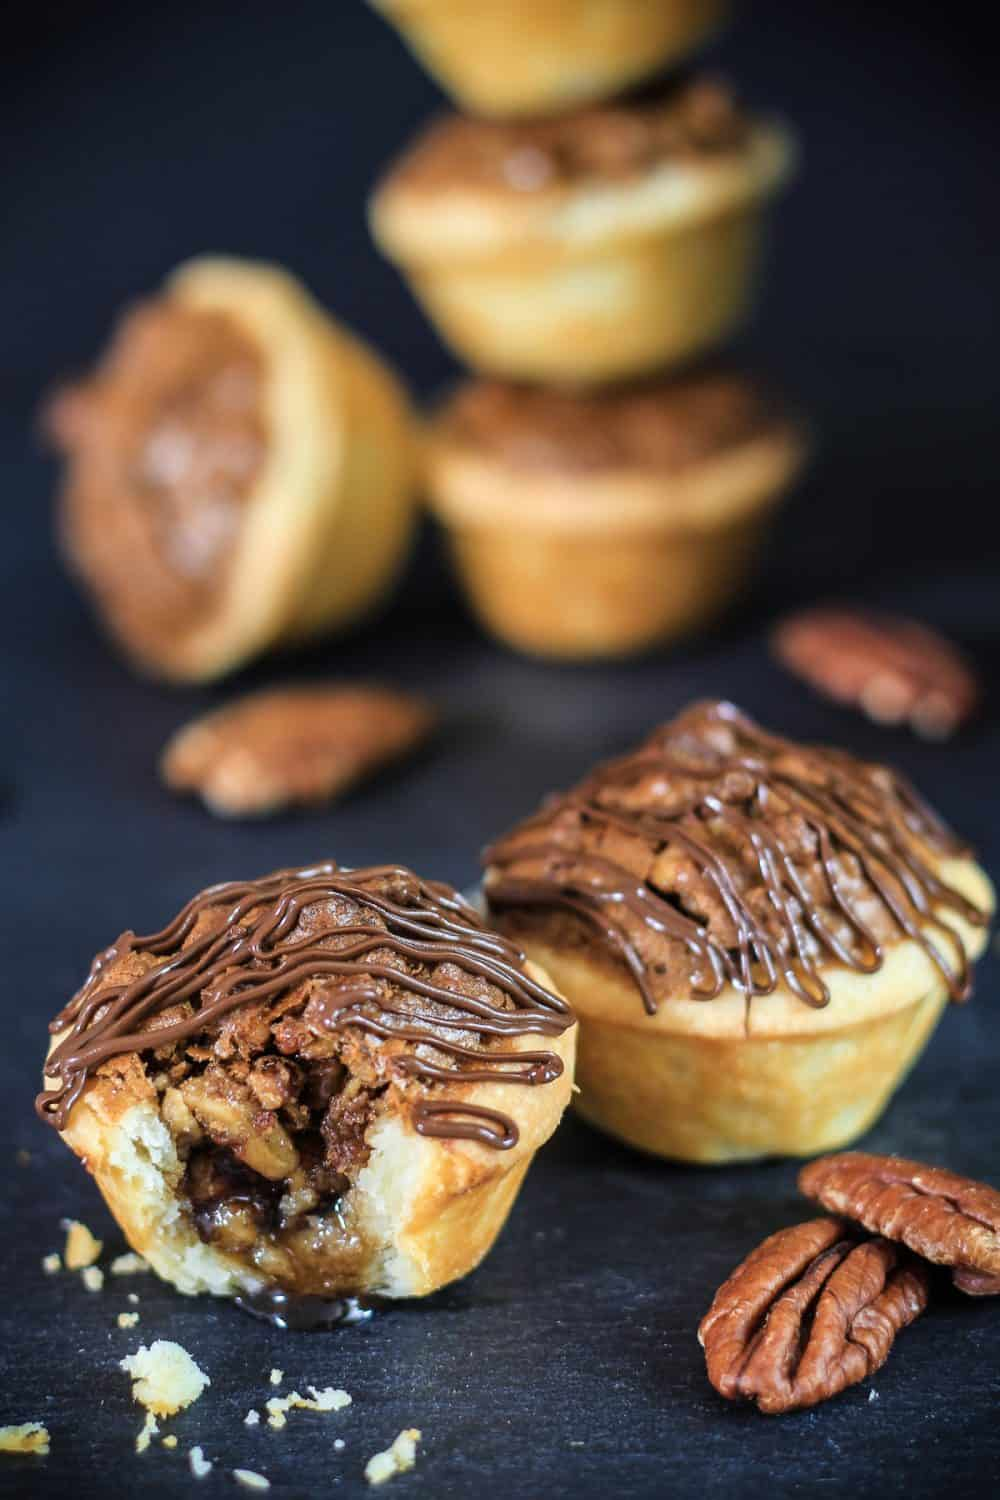 close up image of a bitten pecan tassies with melted chocolate drizzled on top